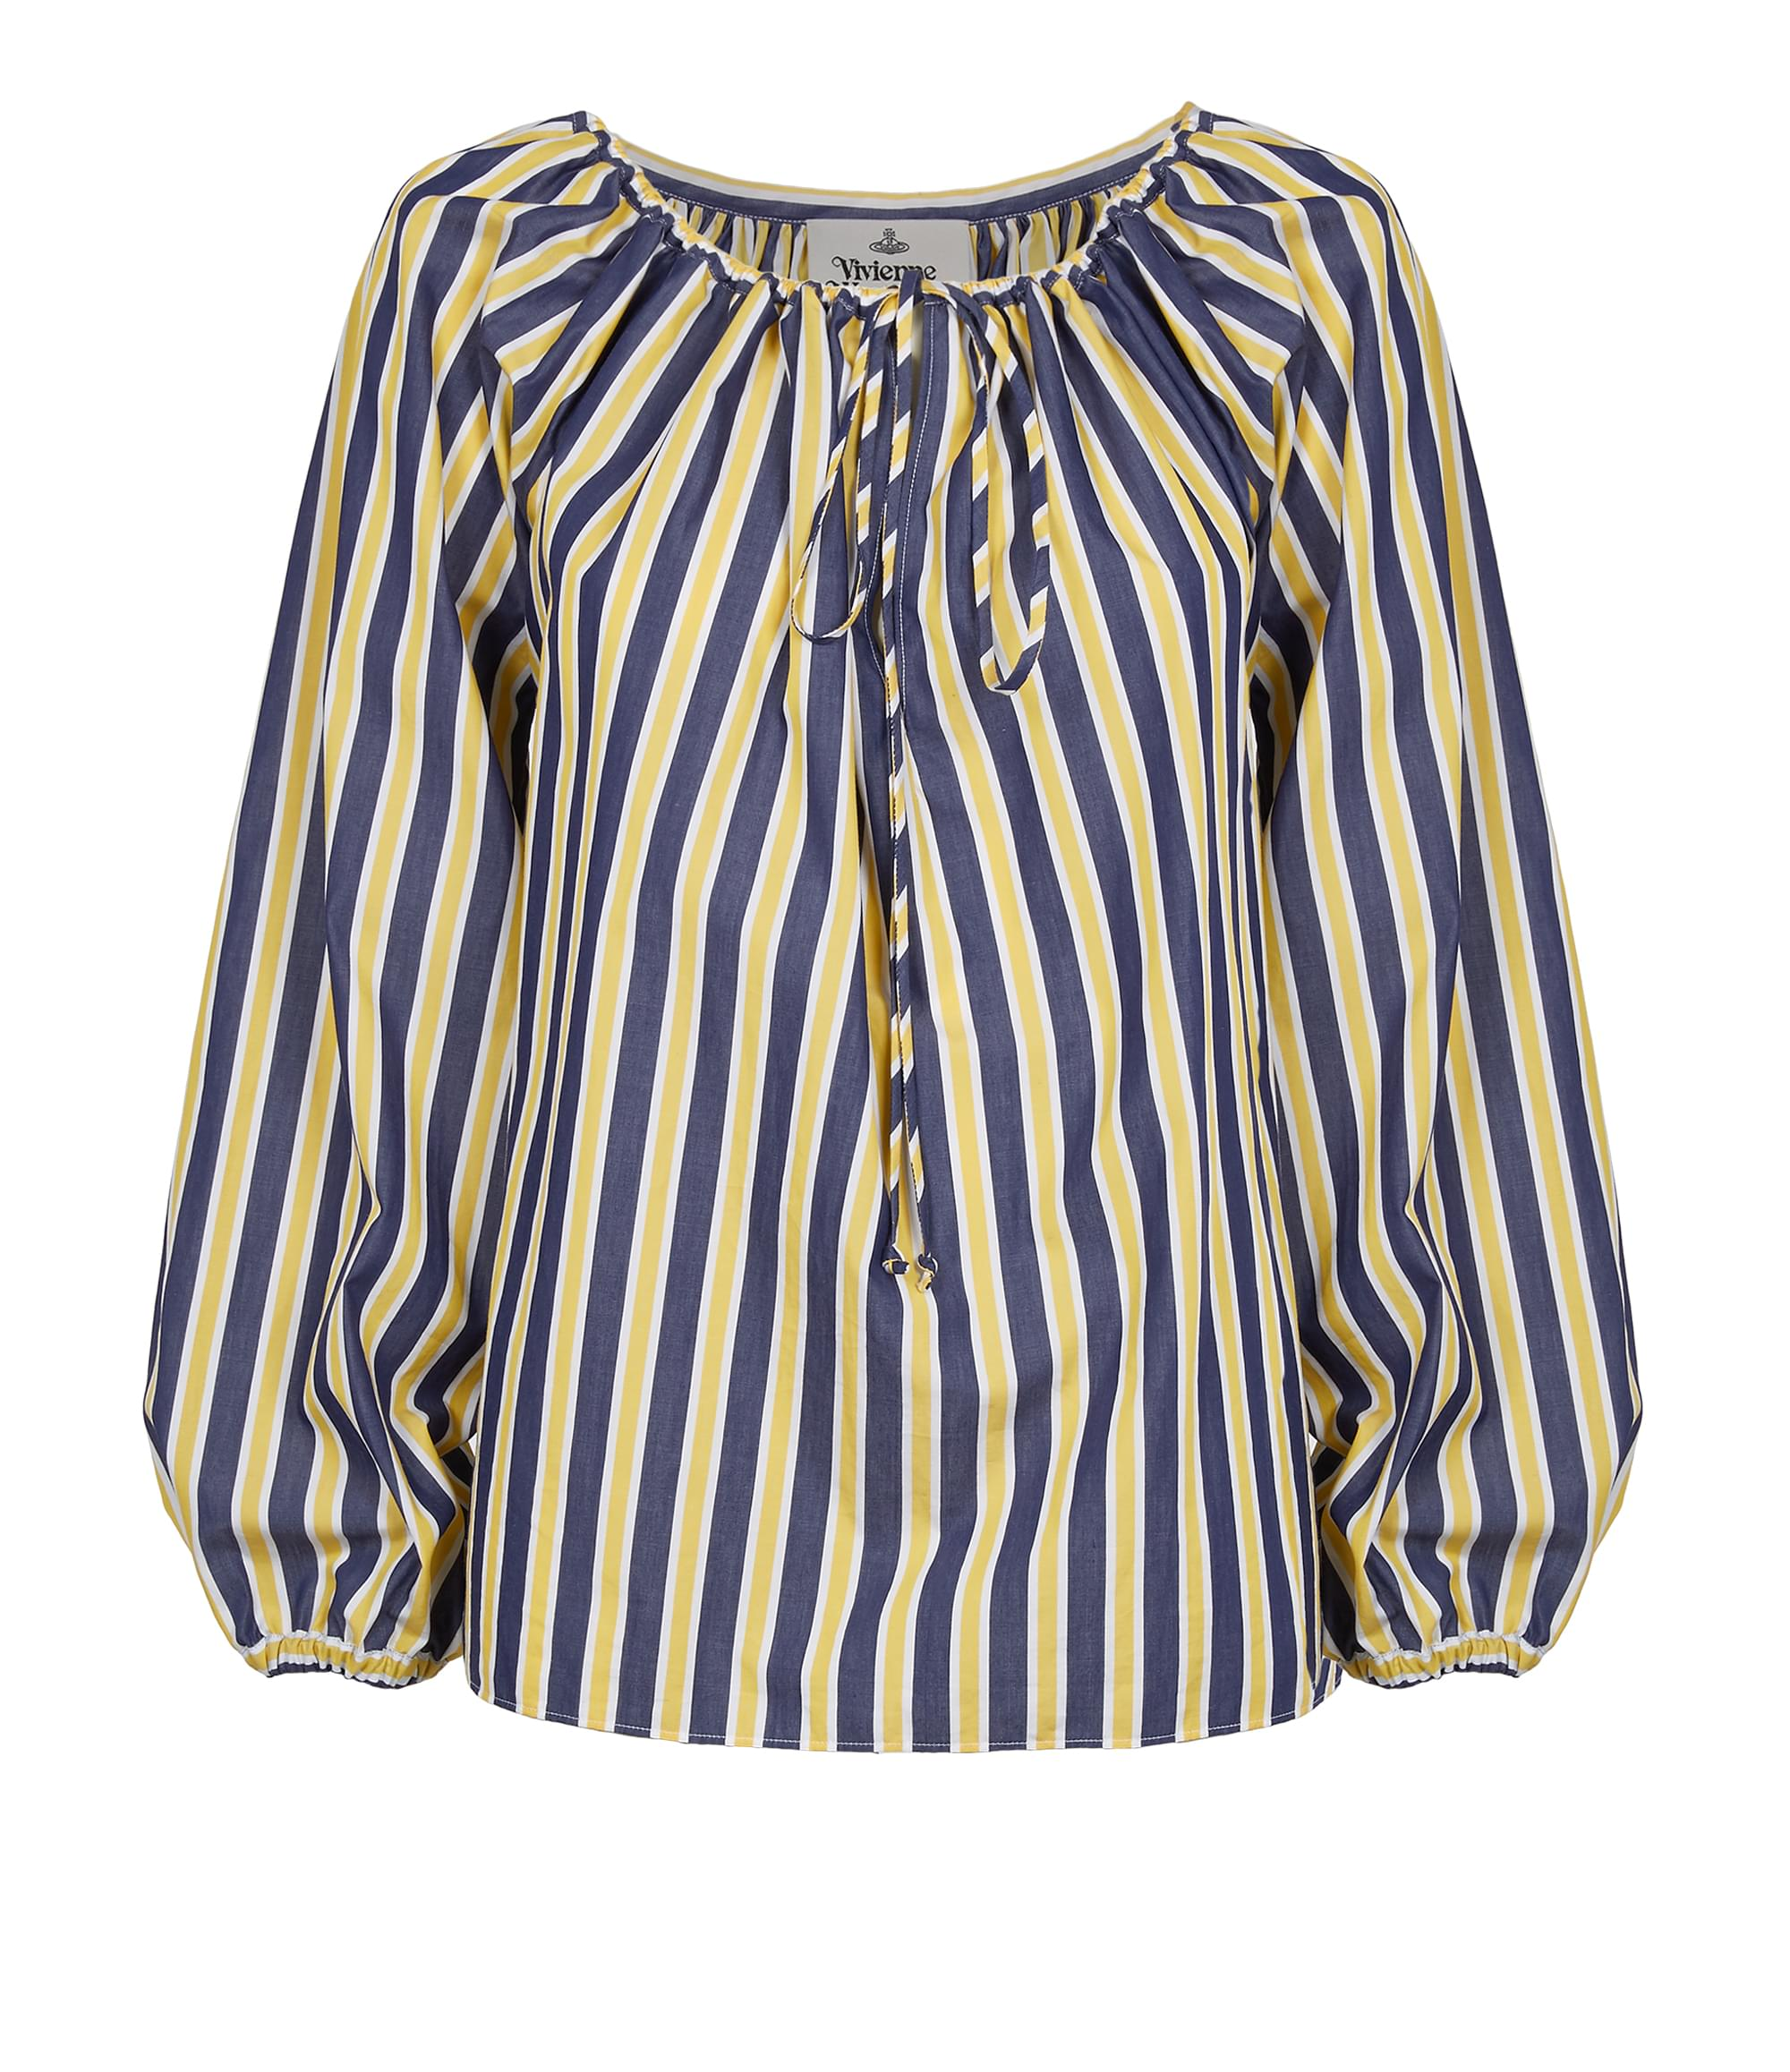 Vivienne Westwood Gipsy Shirt Blue\/Yellow Stripes